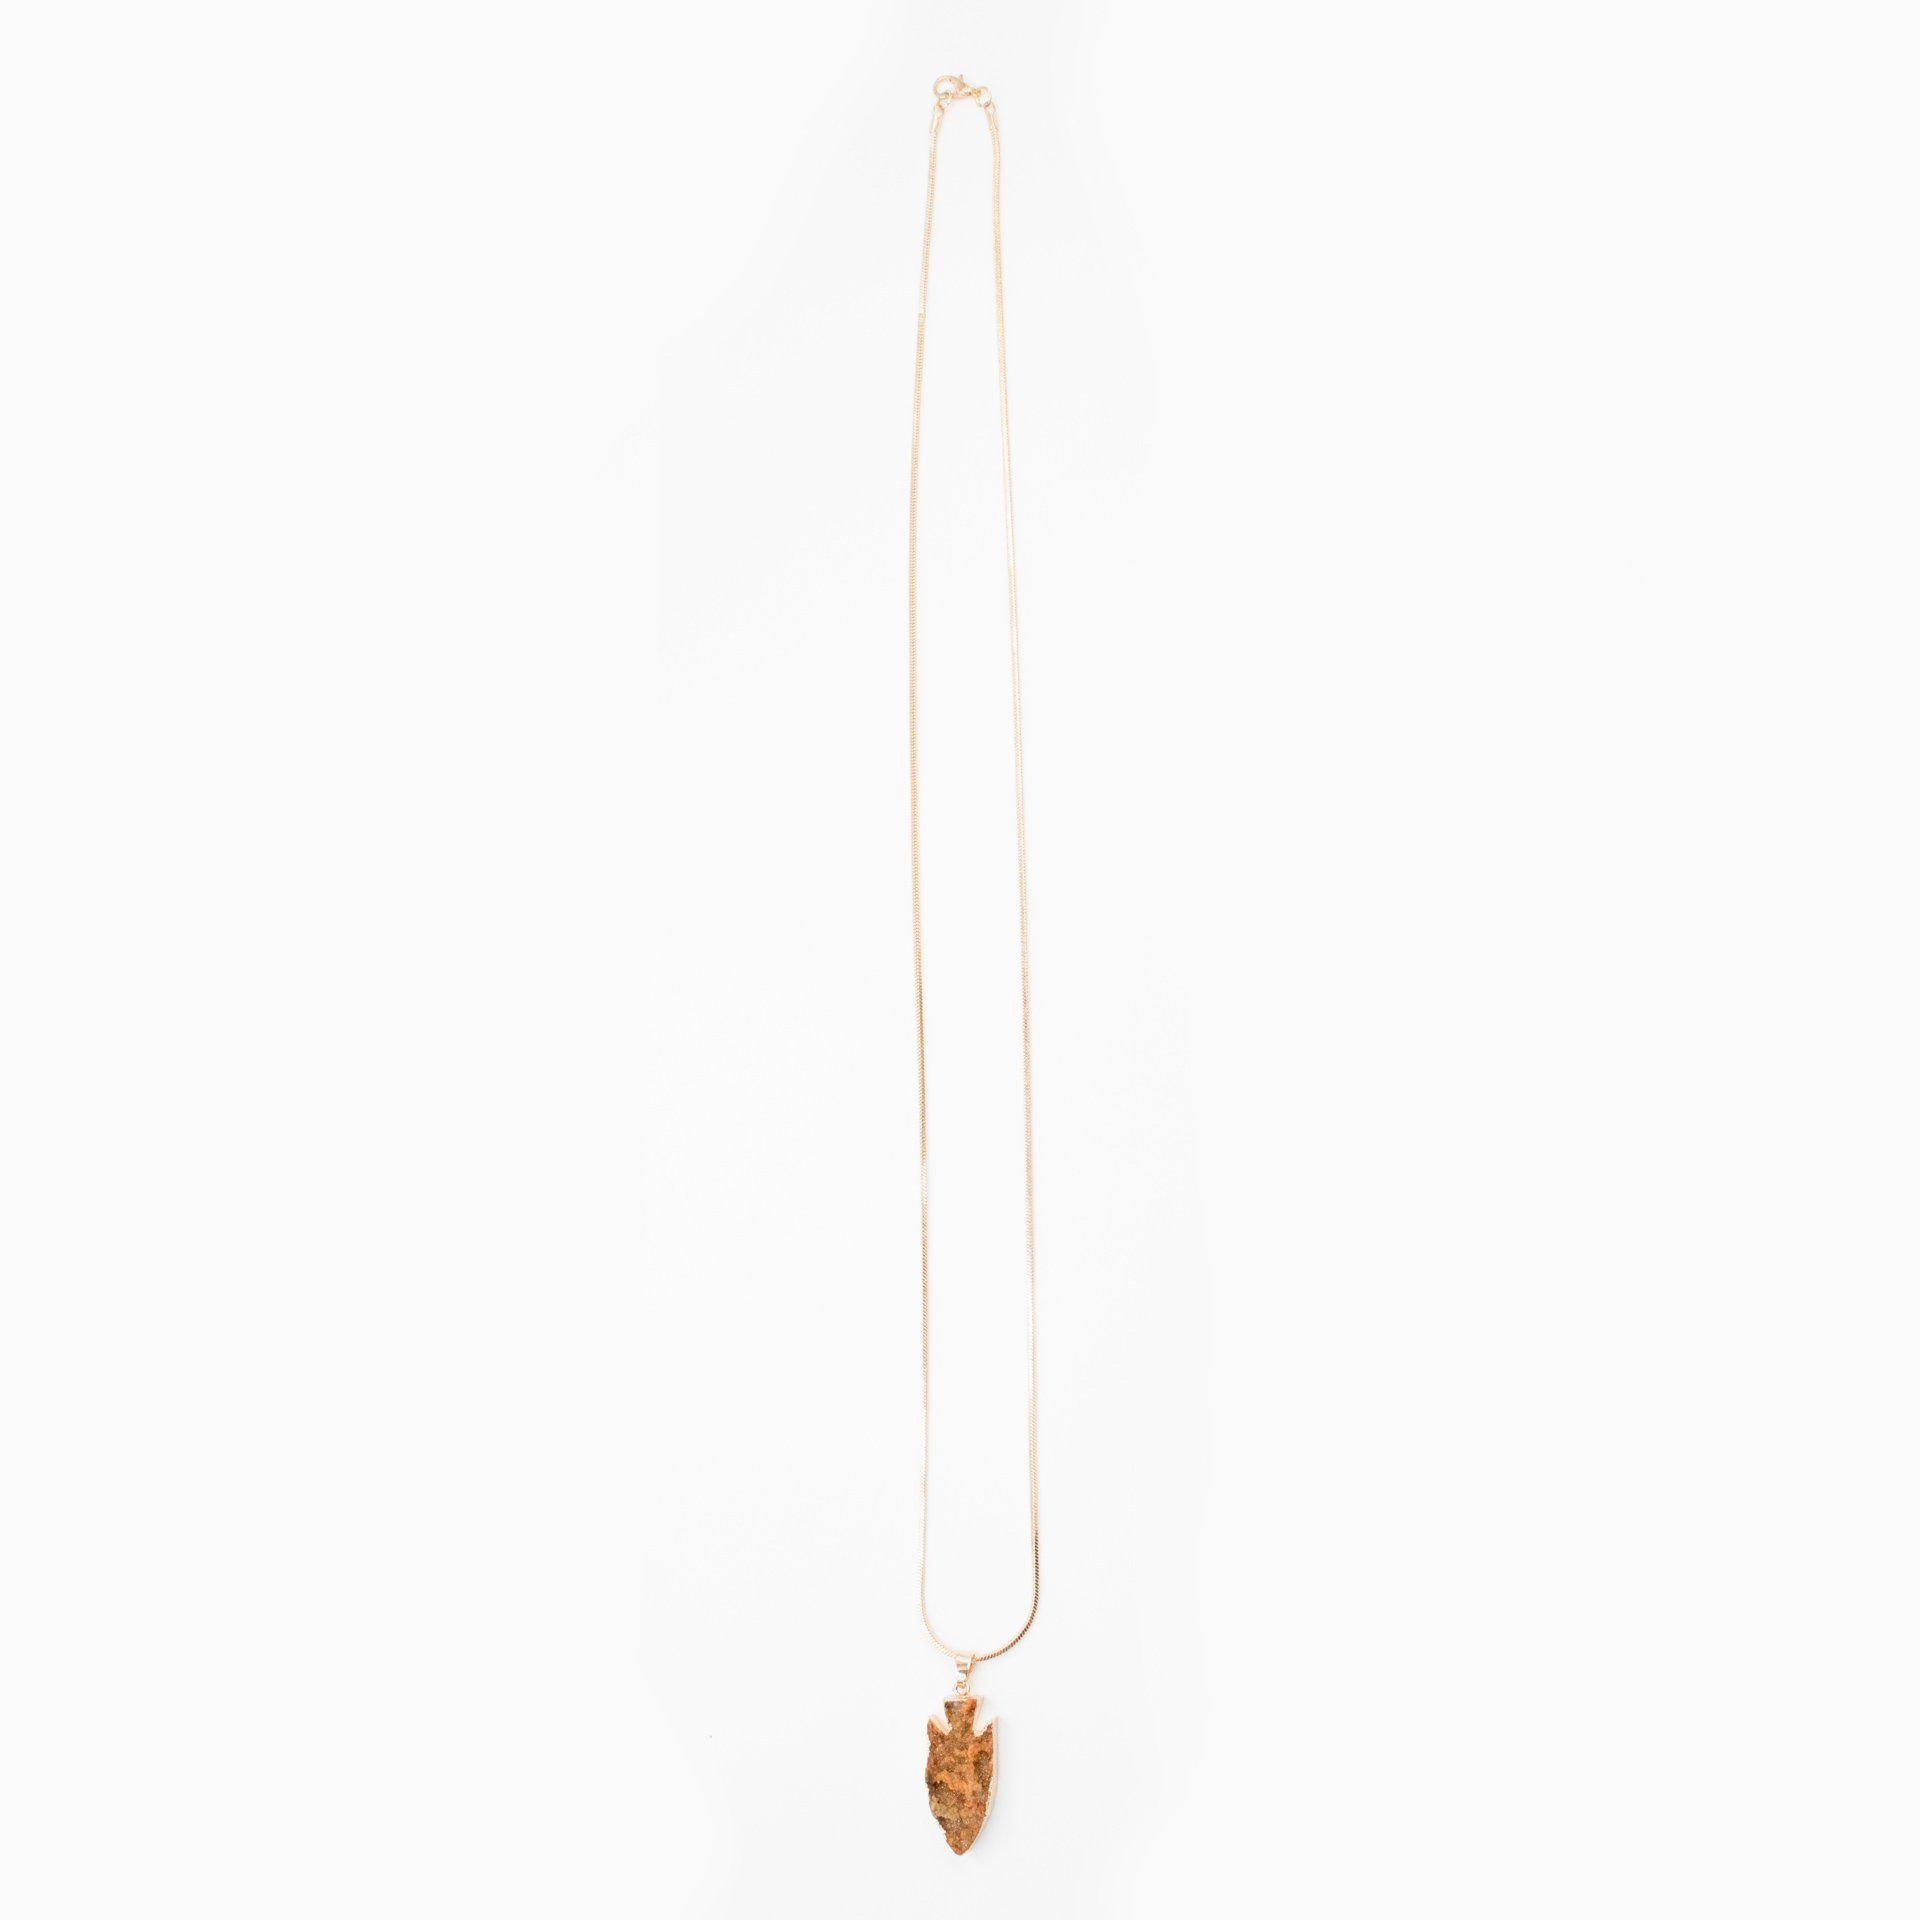 Druzy Arrowhead Pendant Long Necklace - Arlo and Arrows